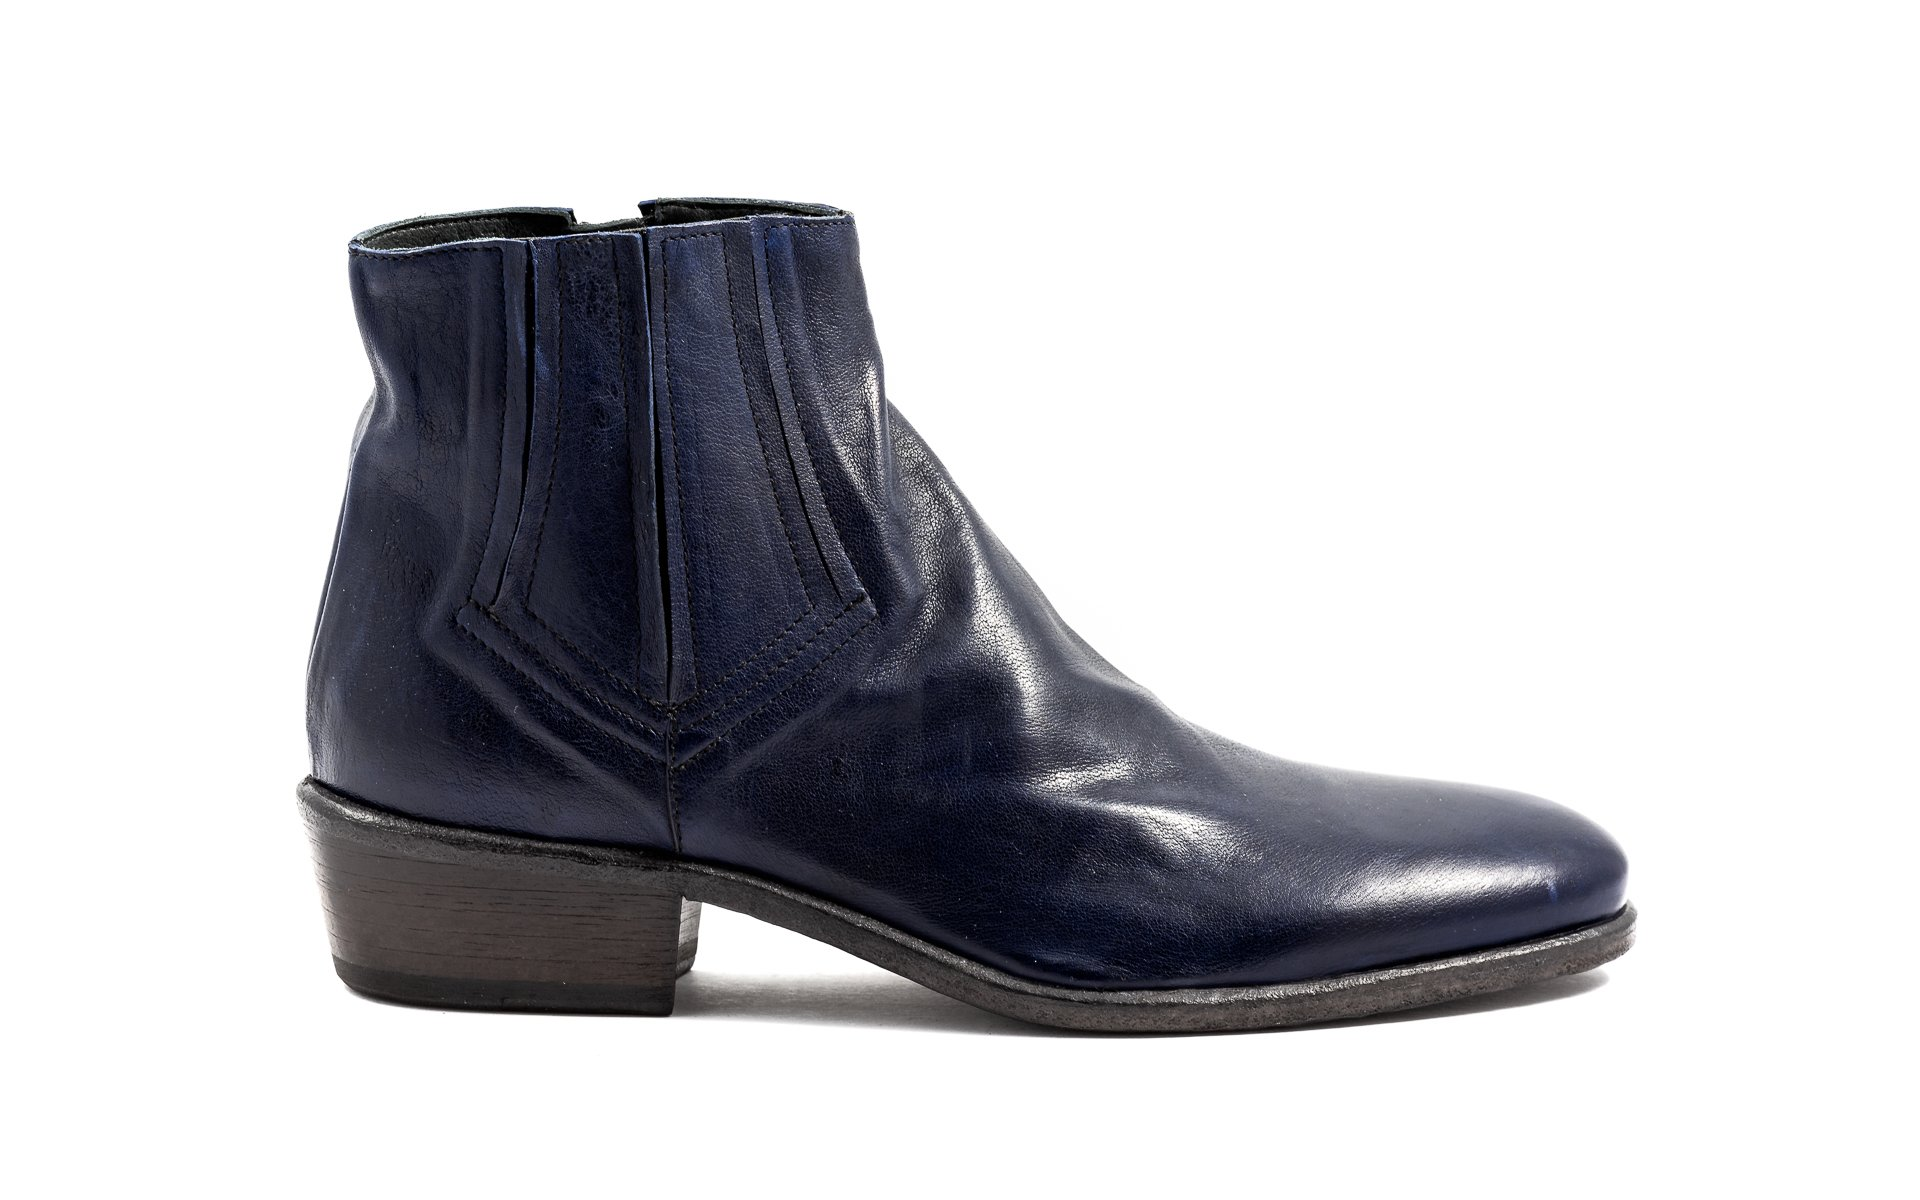 Chance_Caio-D_AnkleBoot_Blue_Leather-1_2048x2048.jpg